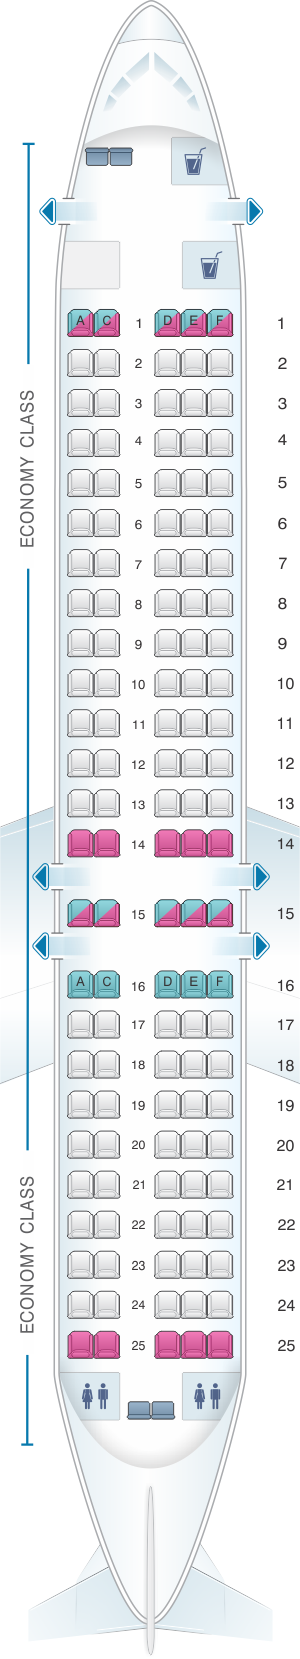 Seat map for QantasLink Boeing B717 200 125PAX